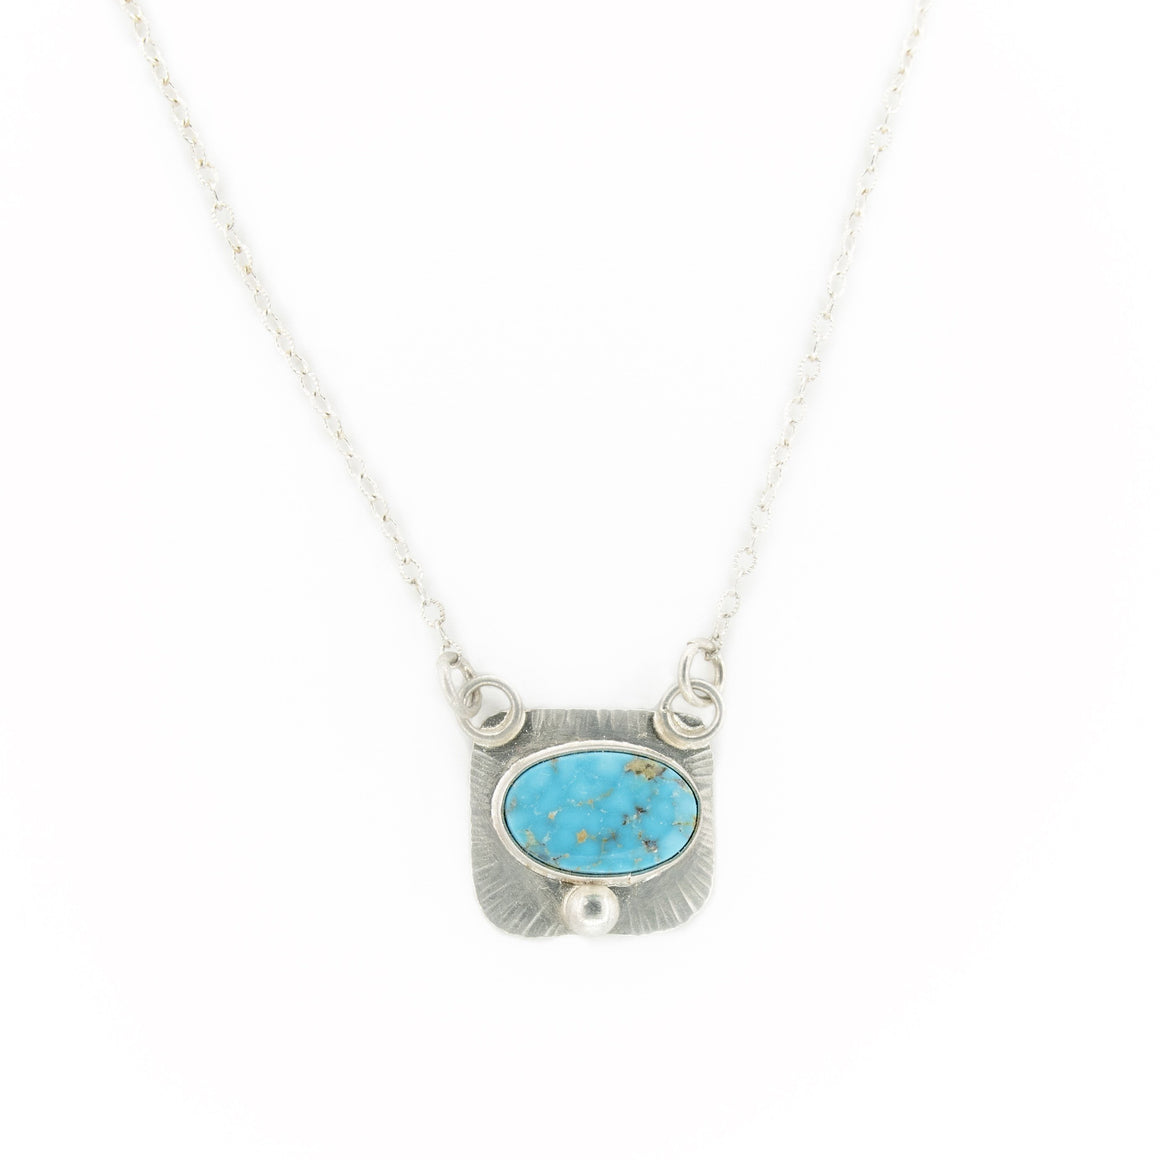 Billie - Balance Turquoise Necklace